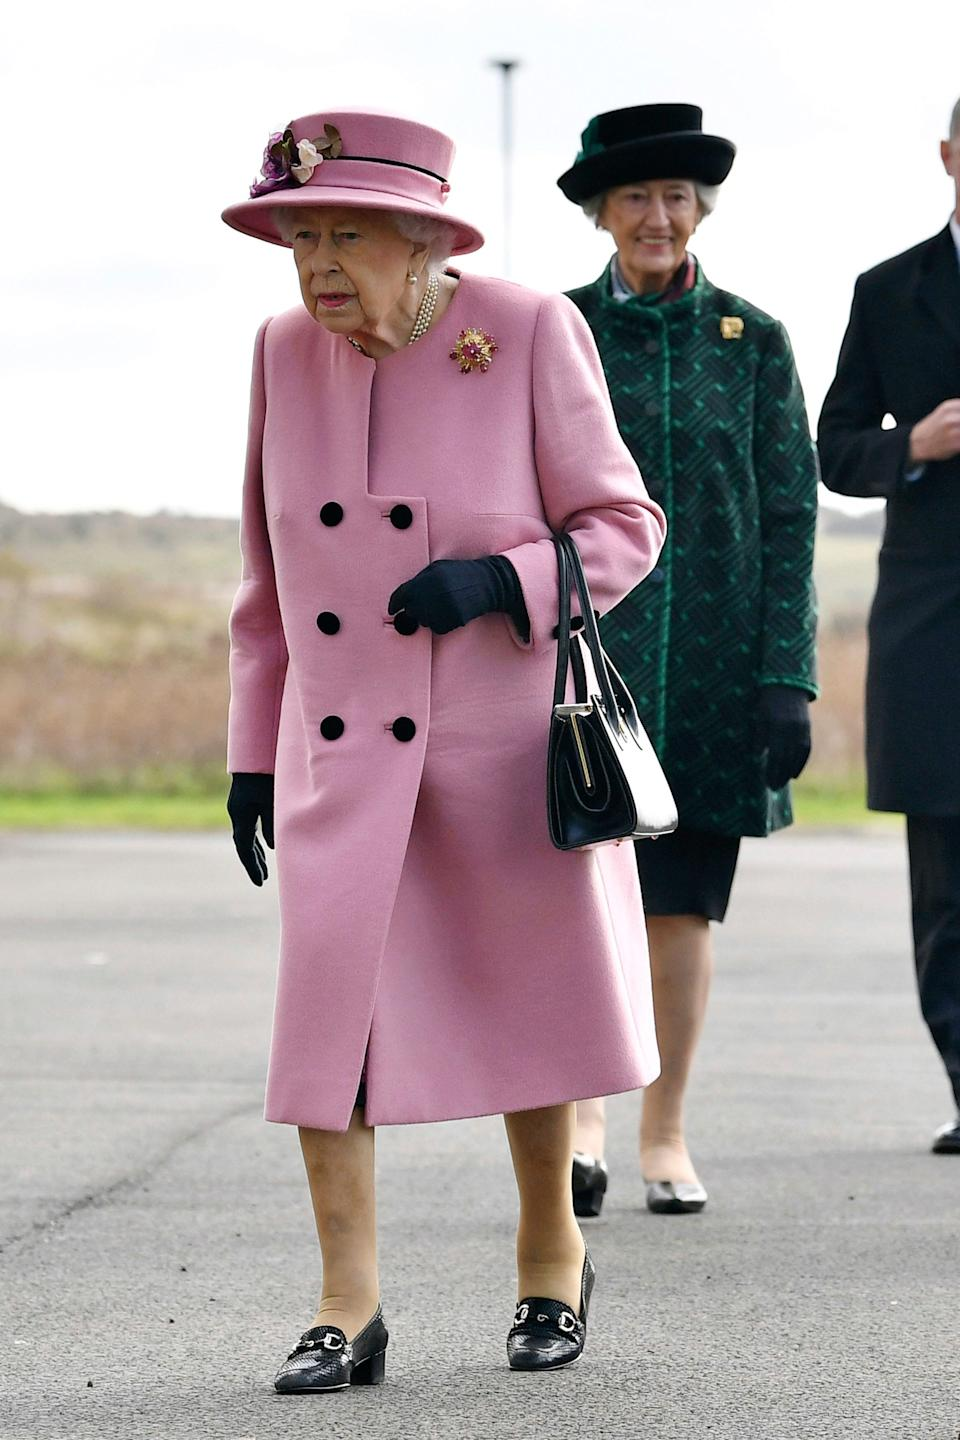 Britain's Queen Elizabeth II arrives for a visit to the Defence Science and Technology Laboratory (DSTL) at Porton Down, England, Thursday Oct. 15, 2020, to view the Energetics Enclosure and display of weaponry and tactics used in counter intelligence.